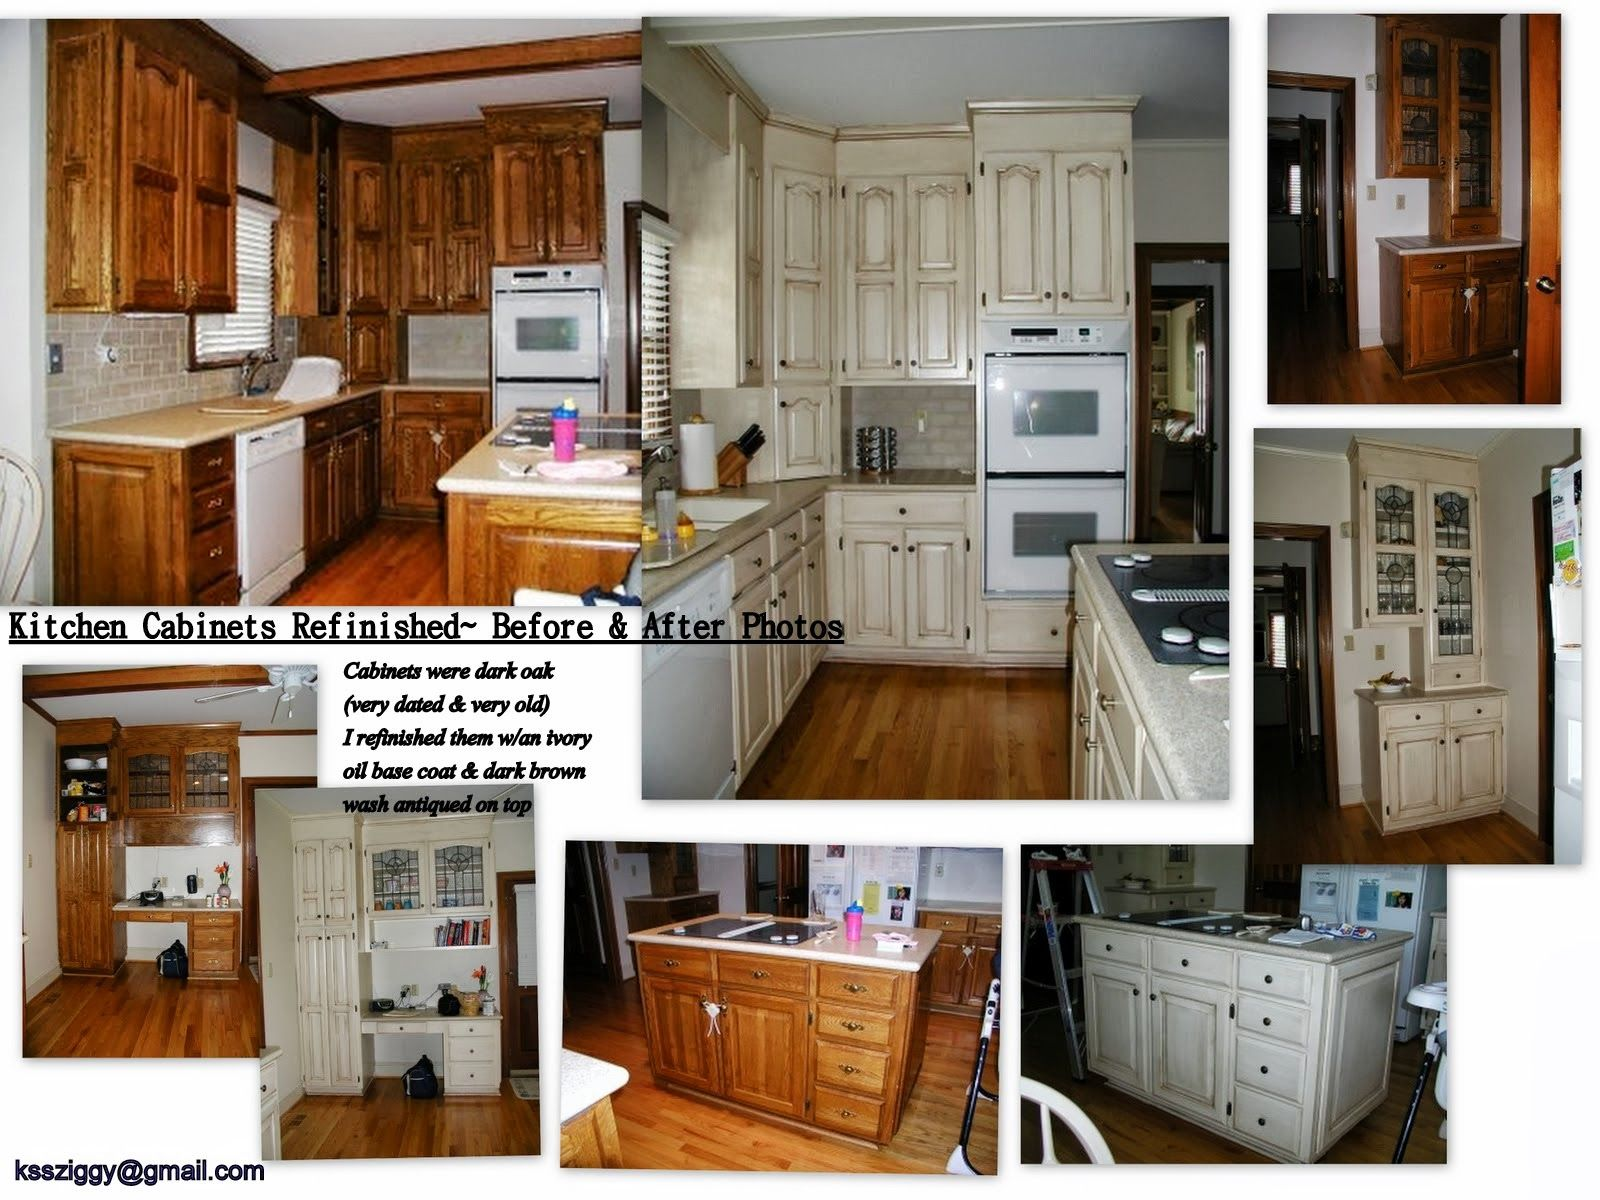 kitchen cabinet refinish job i did - before & after photos. cabinets